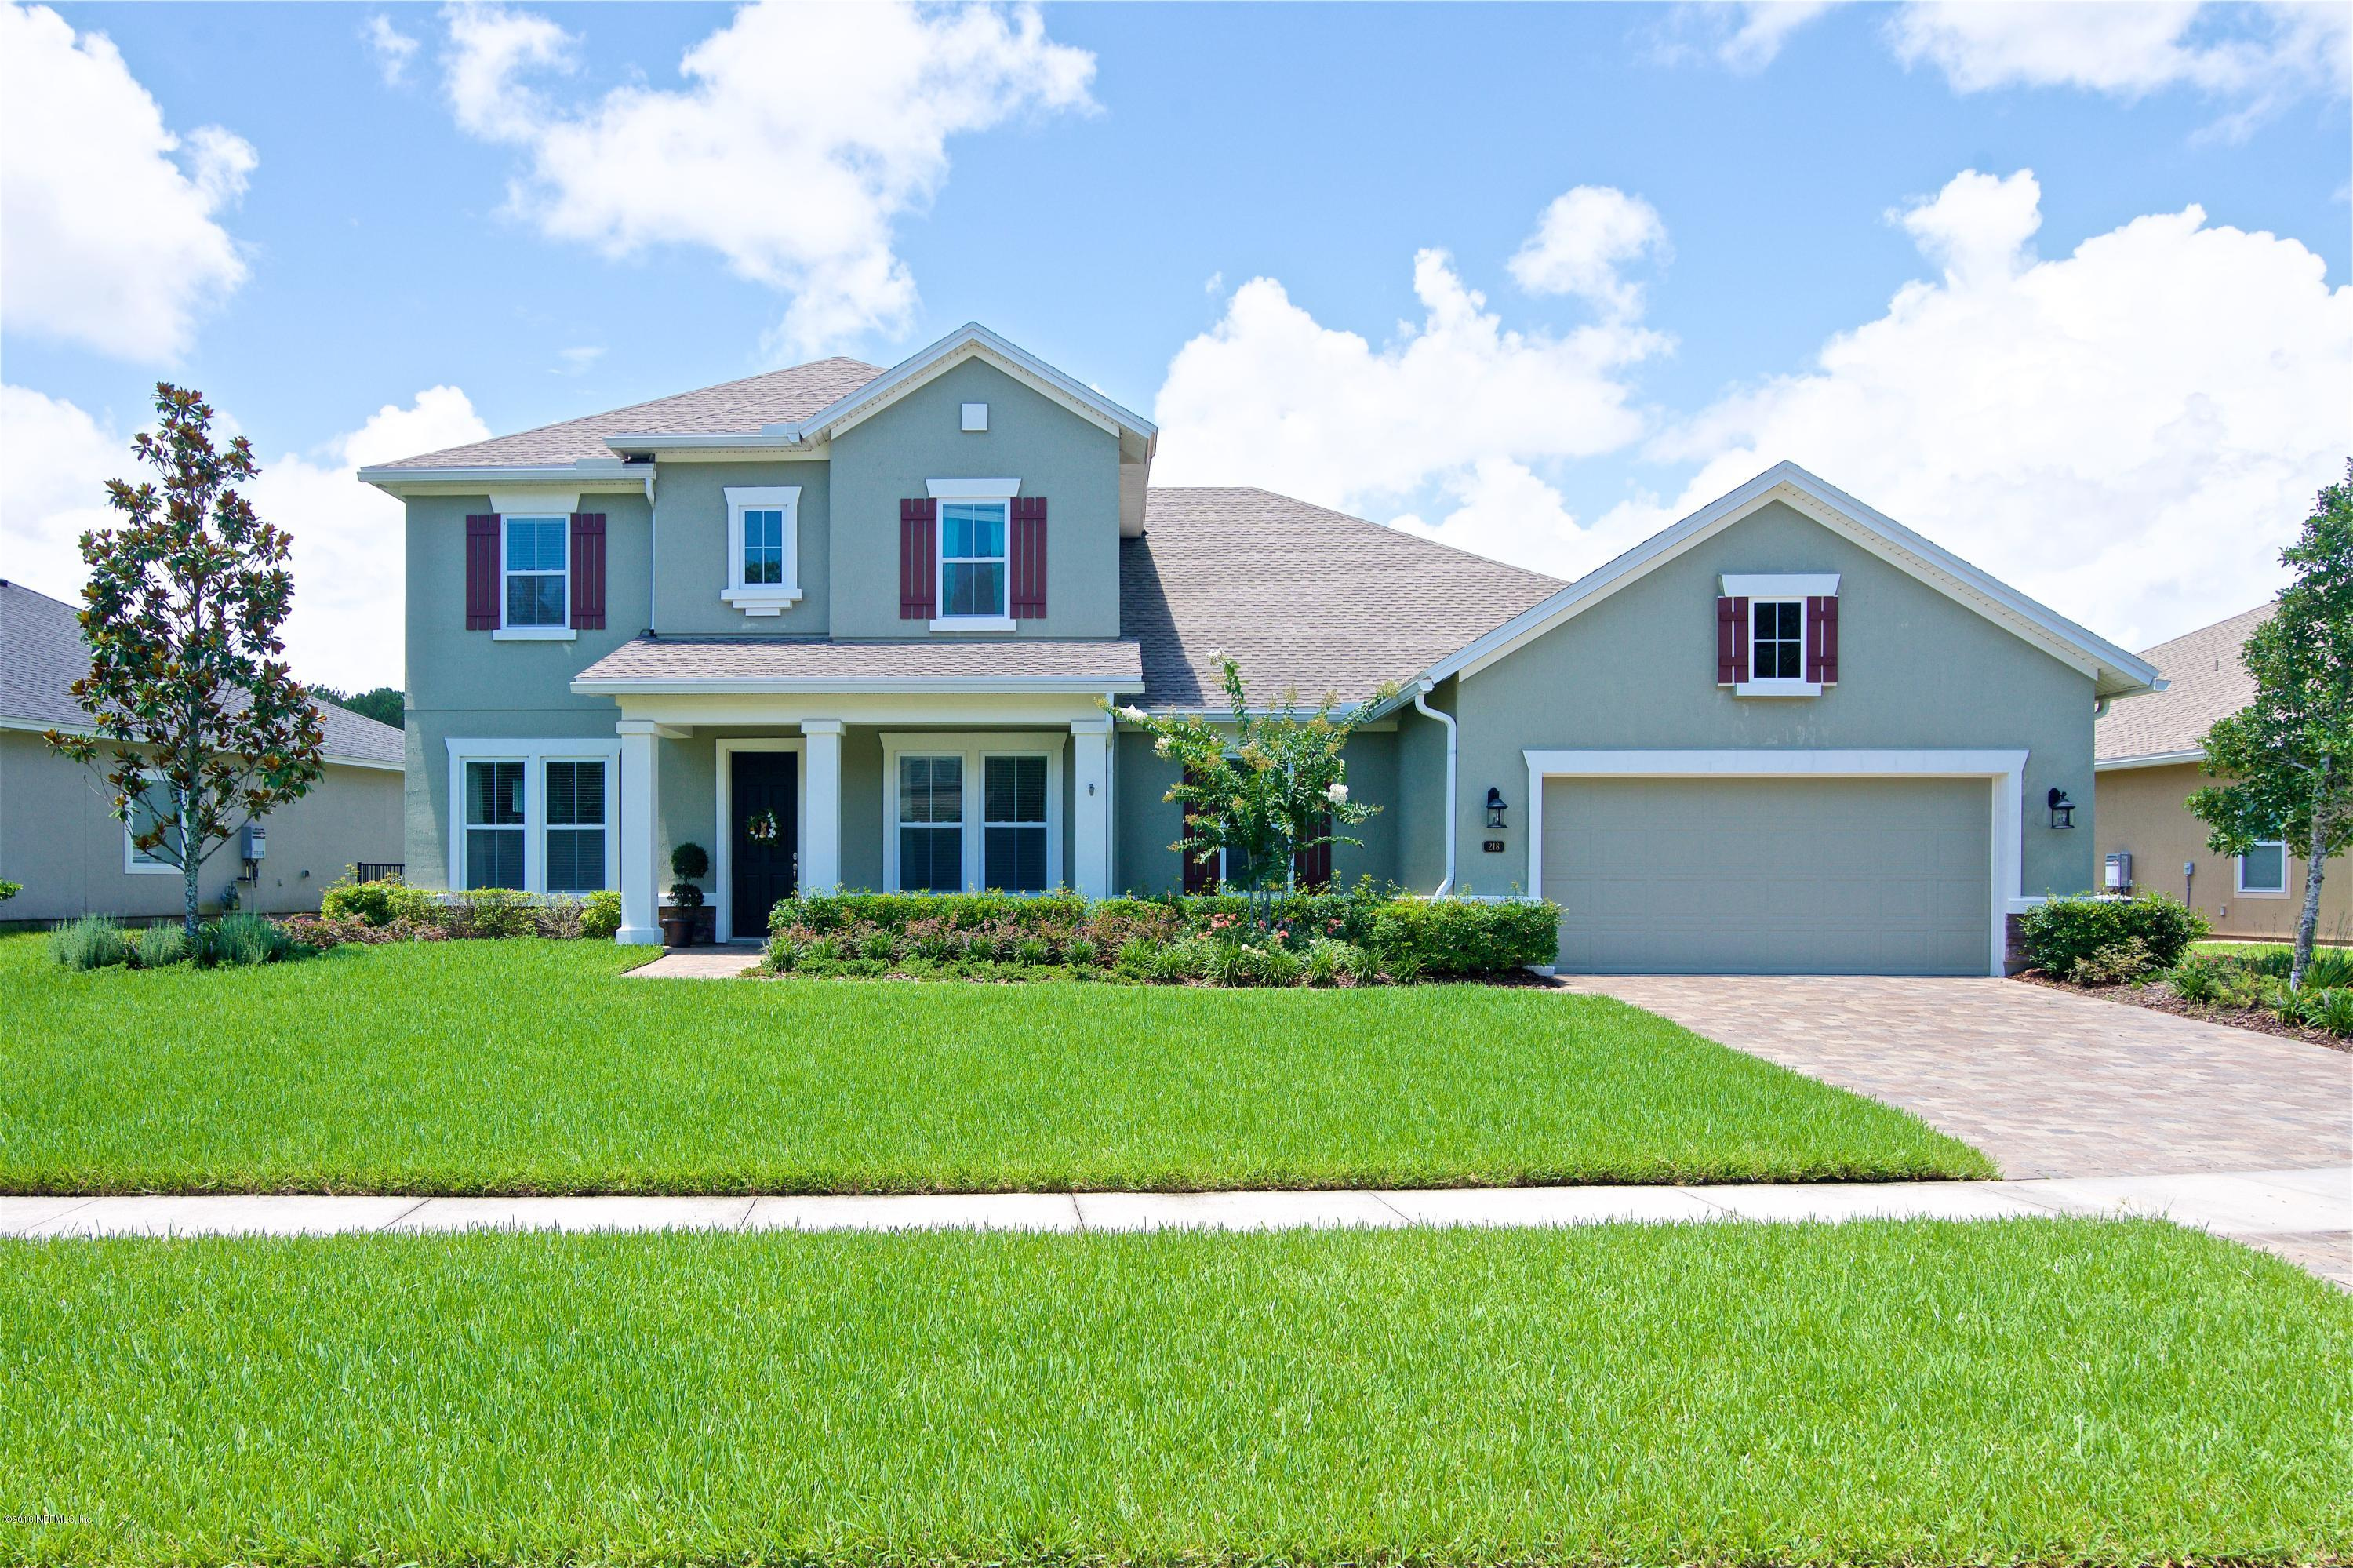 218 MAJESTIC EAGLE, PONTE VEDRA, FLORIDA 32081, 5 Bedrooms Bedrooms, ,4 BathroomsBathrooms,Residential - single family,For sale,MAJESTIC EAGLE,946178